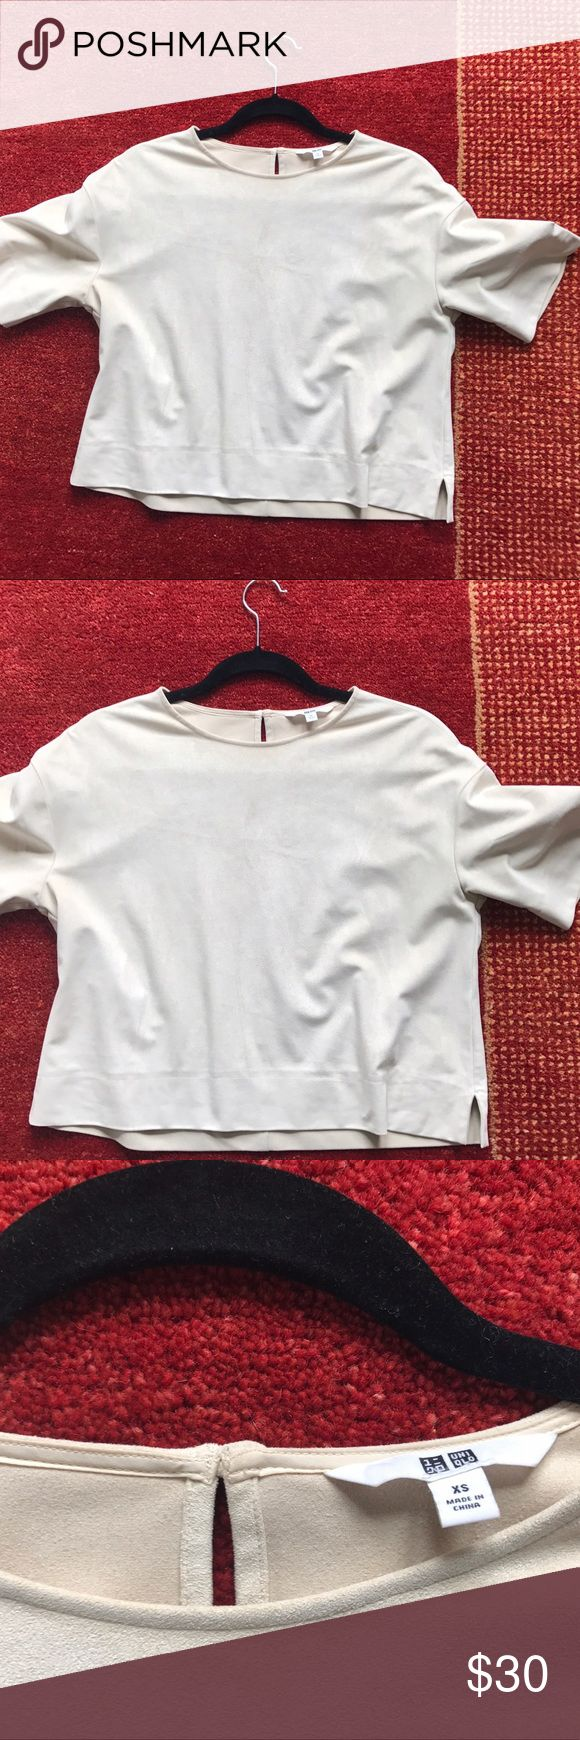 Clear cut suede Uniqlo shirt Cut clean white shirt. The texture is suede and the fabric is thick. This is perfect to wear with jeans and heels. Go for a impeccable look with this! Uniqlo Tops Blouses